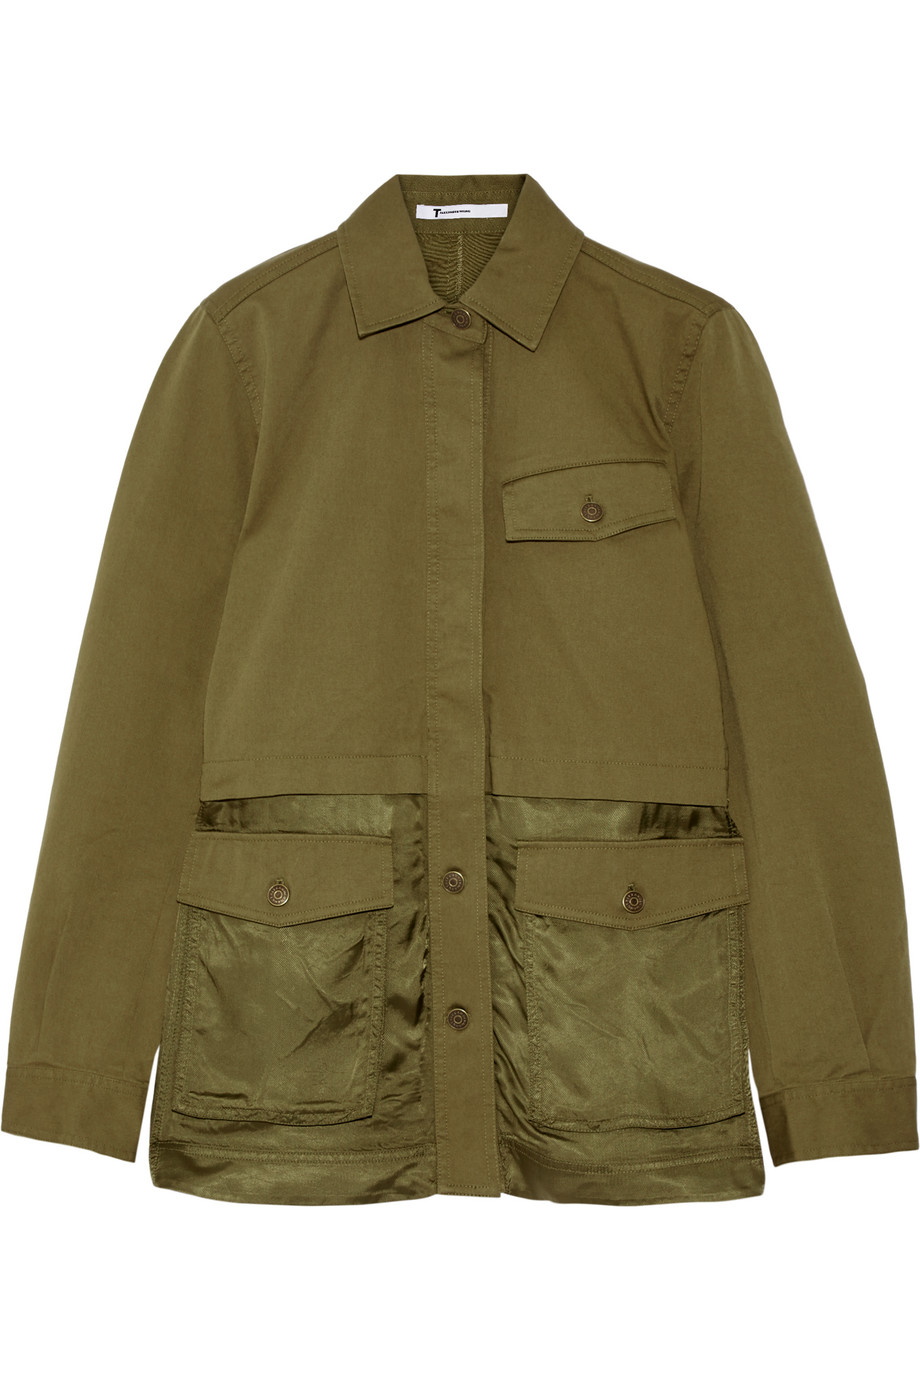 Stretch-Cotton Twill and Satin Jacket, T by Alexander Wang, Army Green, Women's, Size: 4